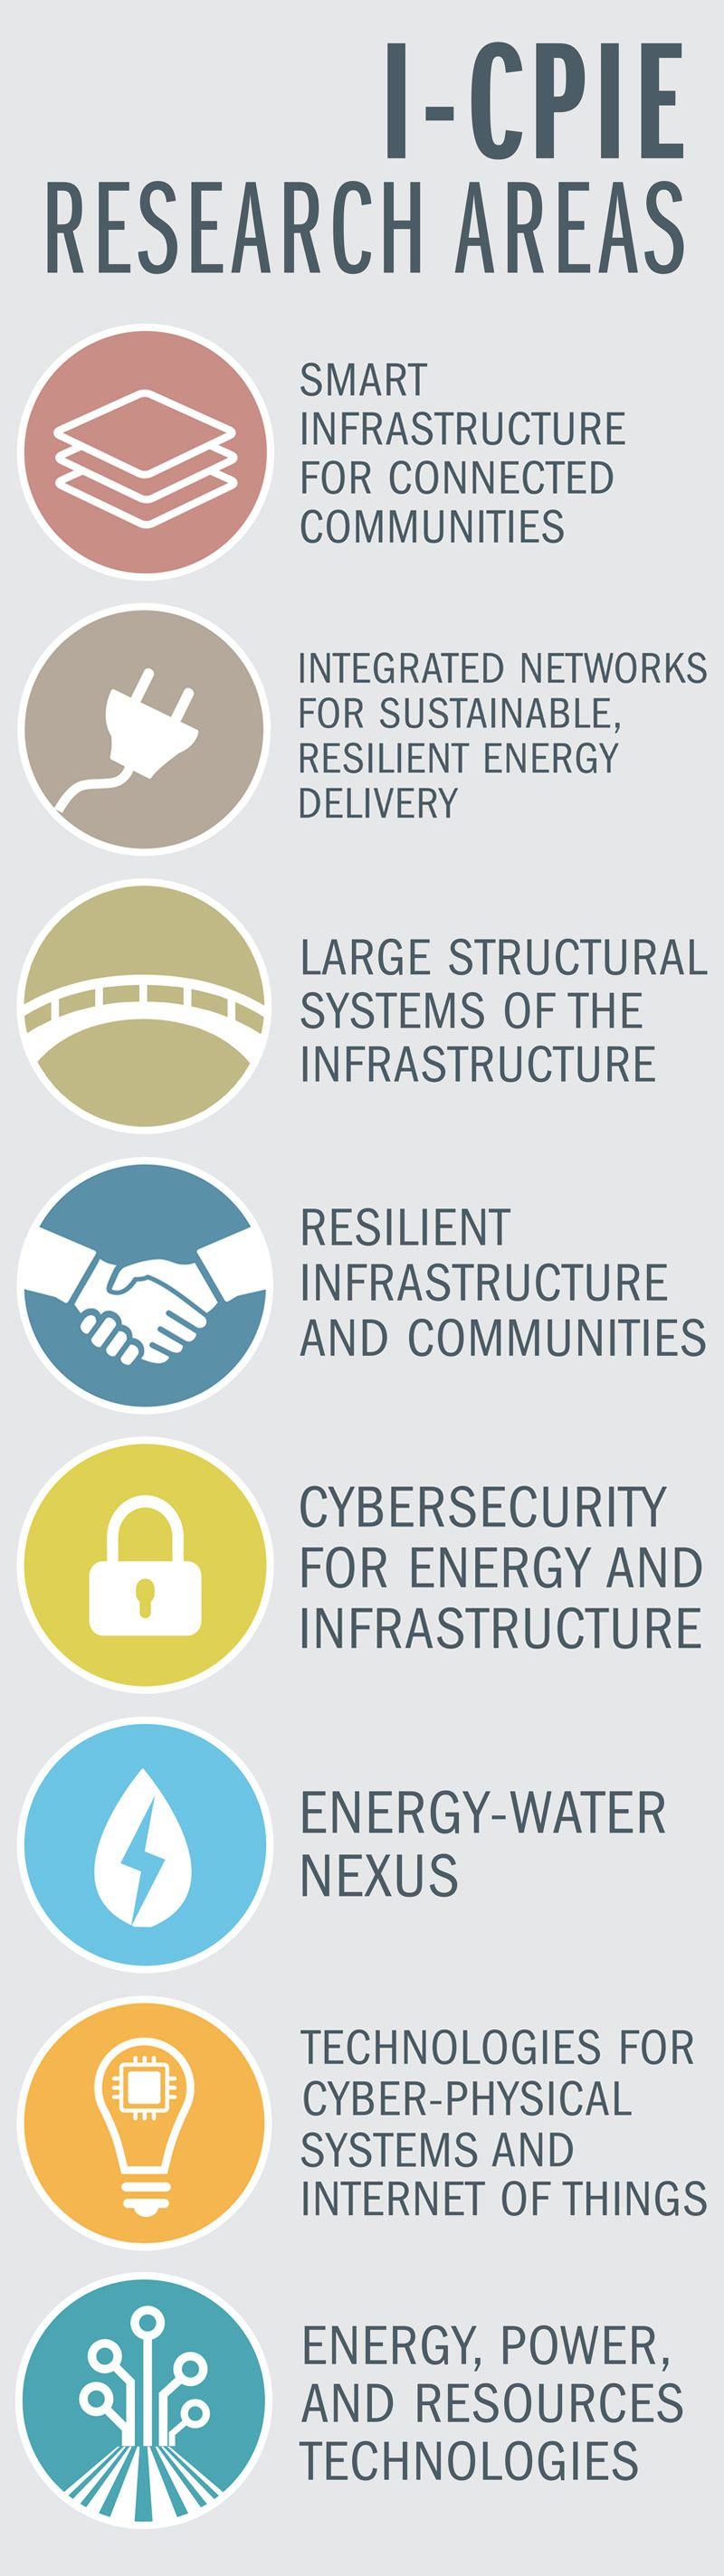 Institute for Cyber Physical Infrastructure and Energy (I-CPIE)